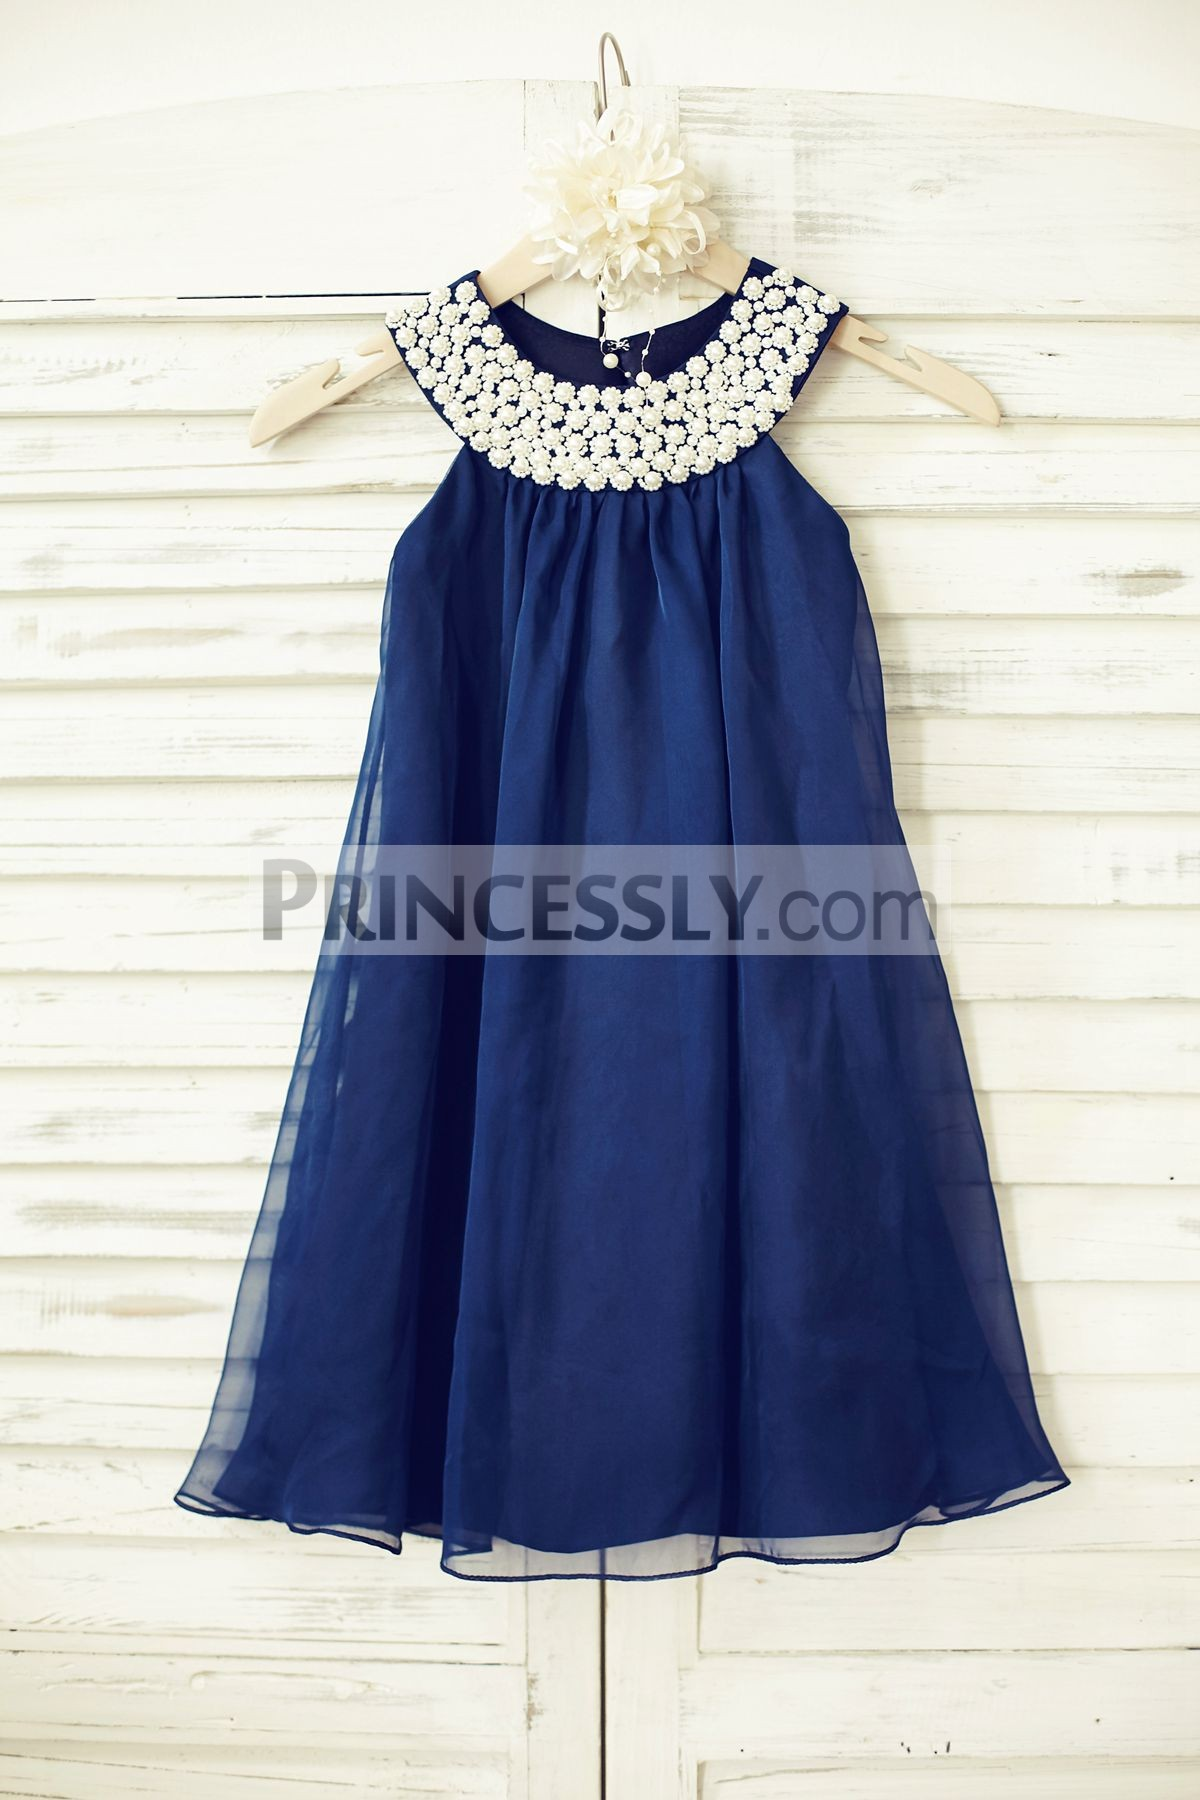 Boho Beach Navy Blue Chiffon Wedding Flower Girl Dress With Pearl